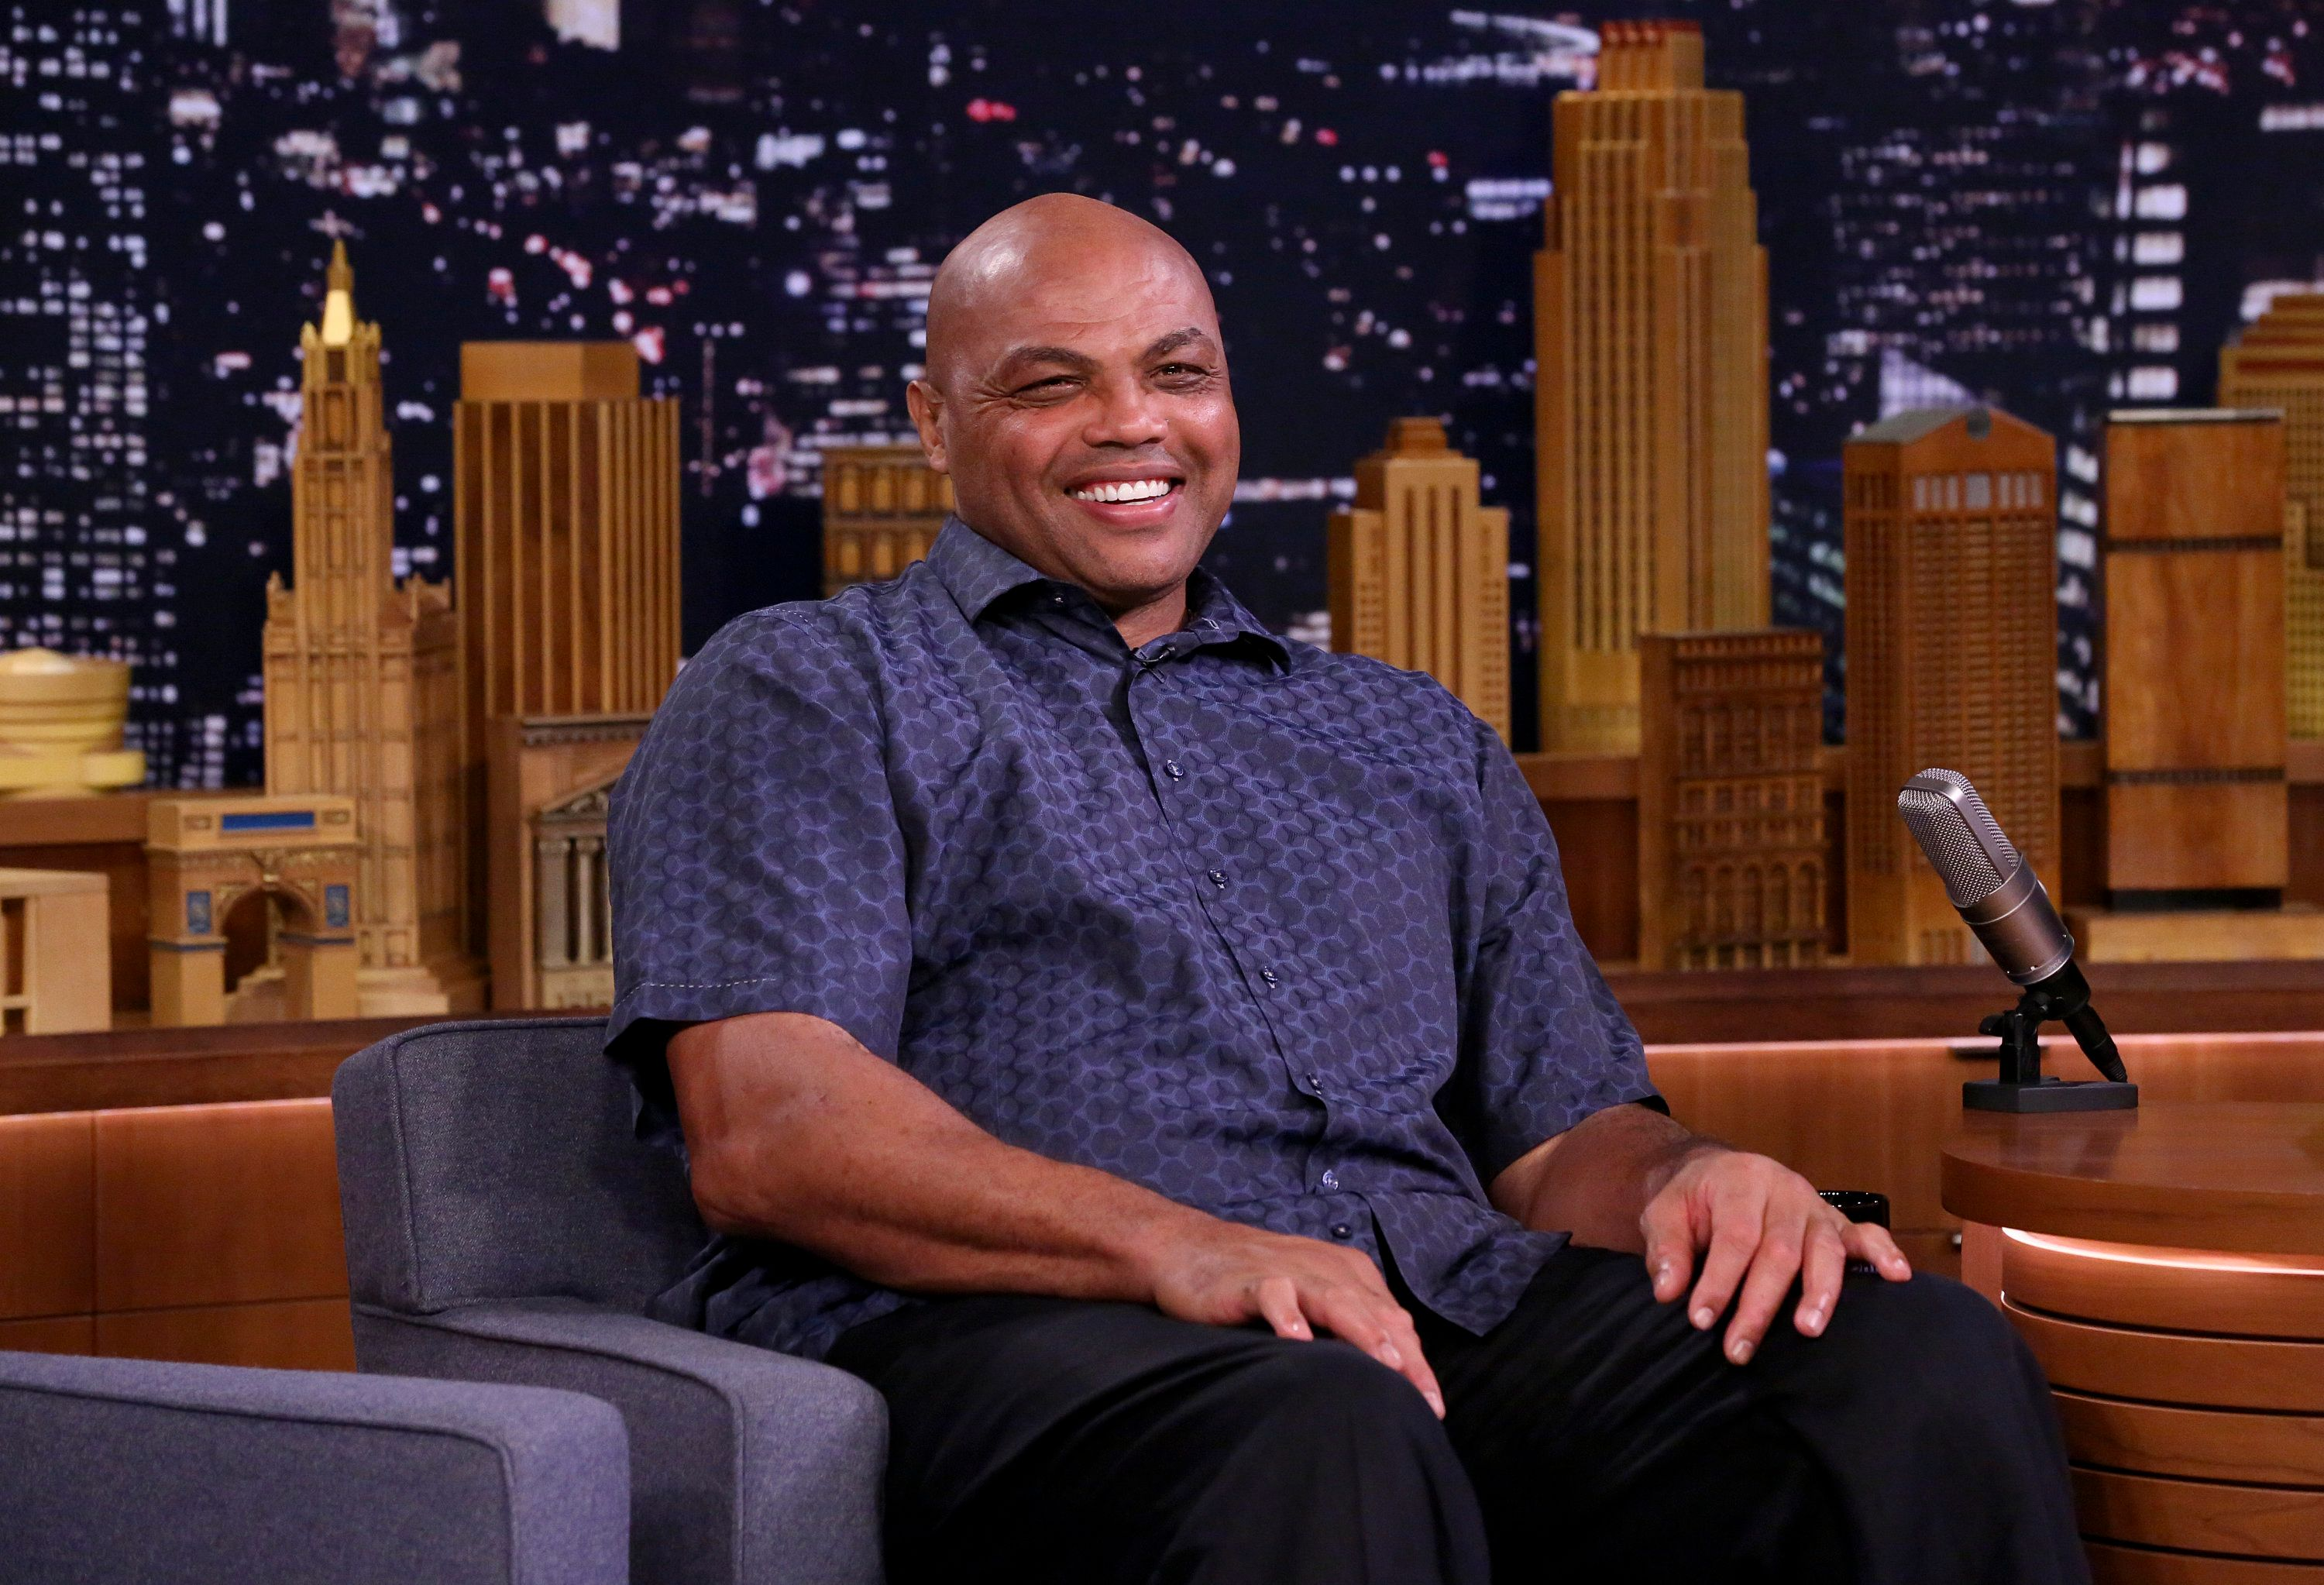 THE TONIGHT SHOW STARRING JIMMY FALLON -- Episode 0943 -- Pictured: Charles Barkley during an interview on October 11, 2018 -- (Photo by: Andrew Lipovsky/NBC/NBCU Photo Bank via Getty Images)